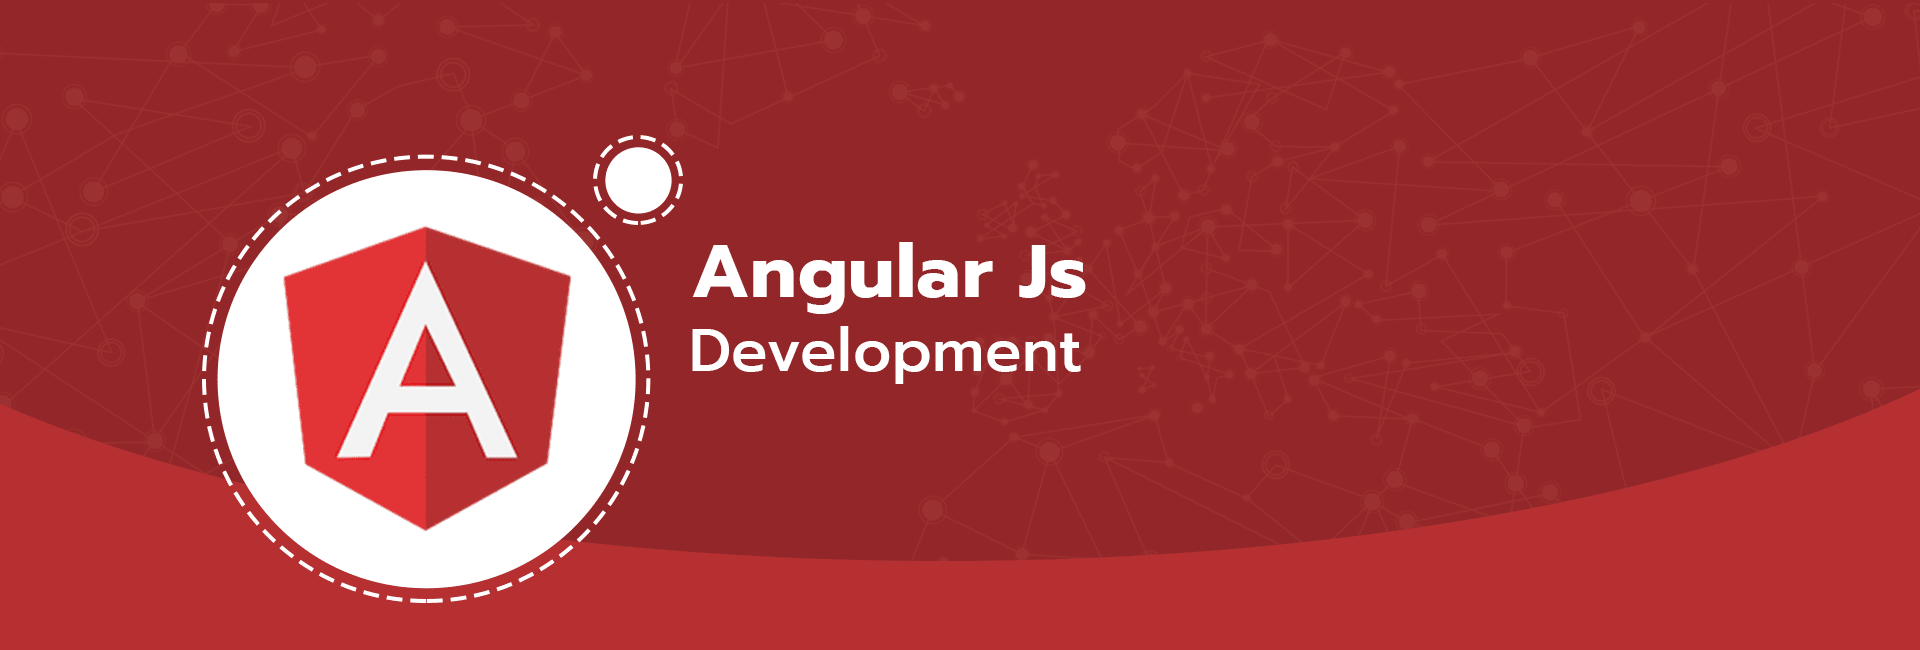 angular_js developer